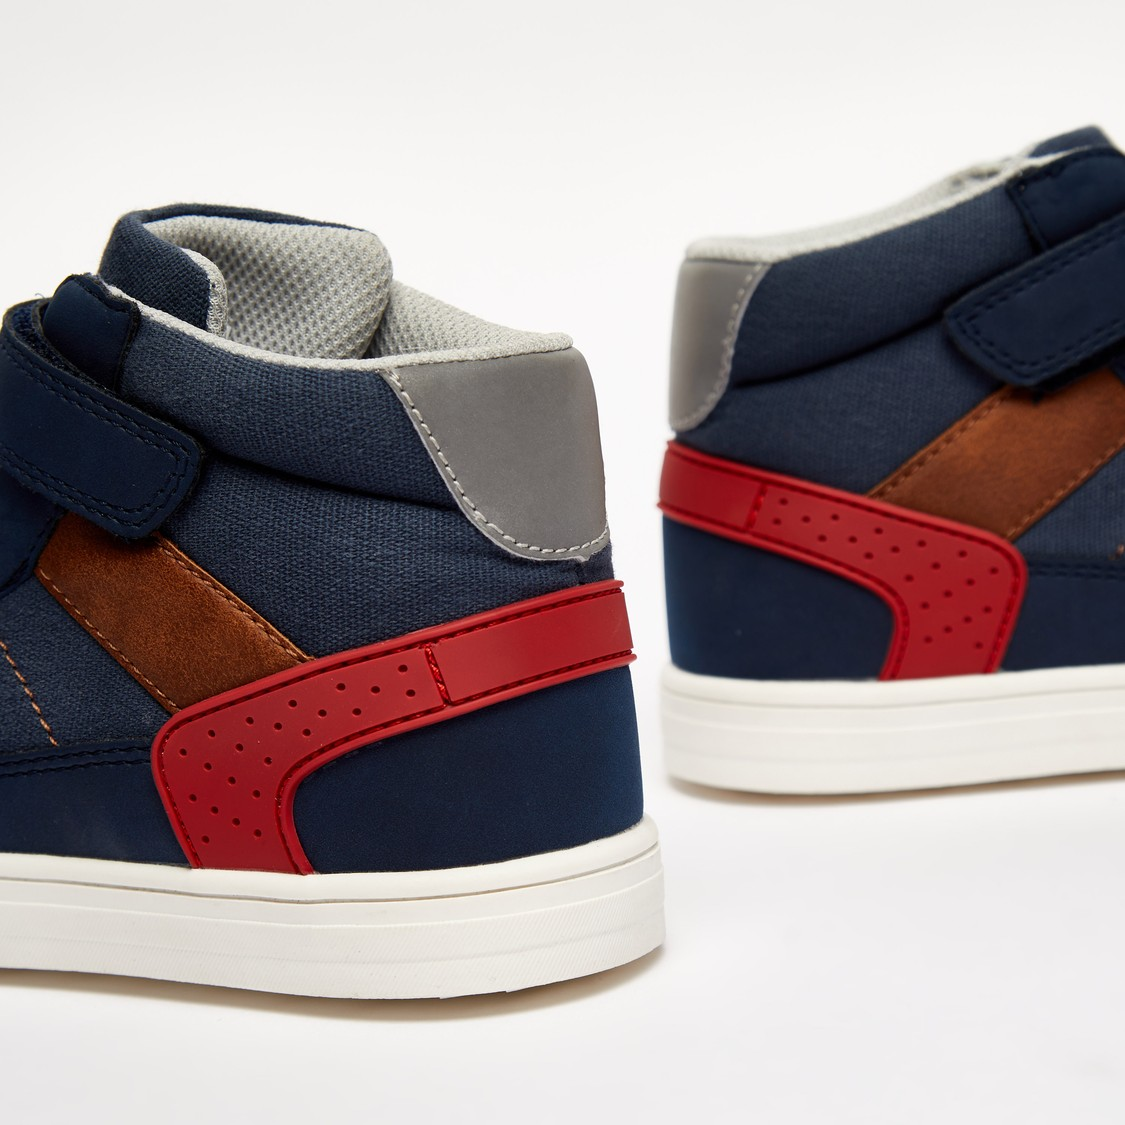 Mid Top Shoes with Hook and Loop Closure